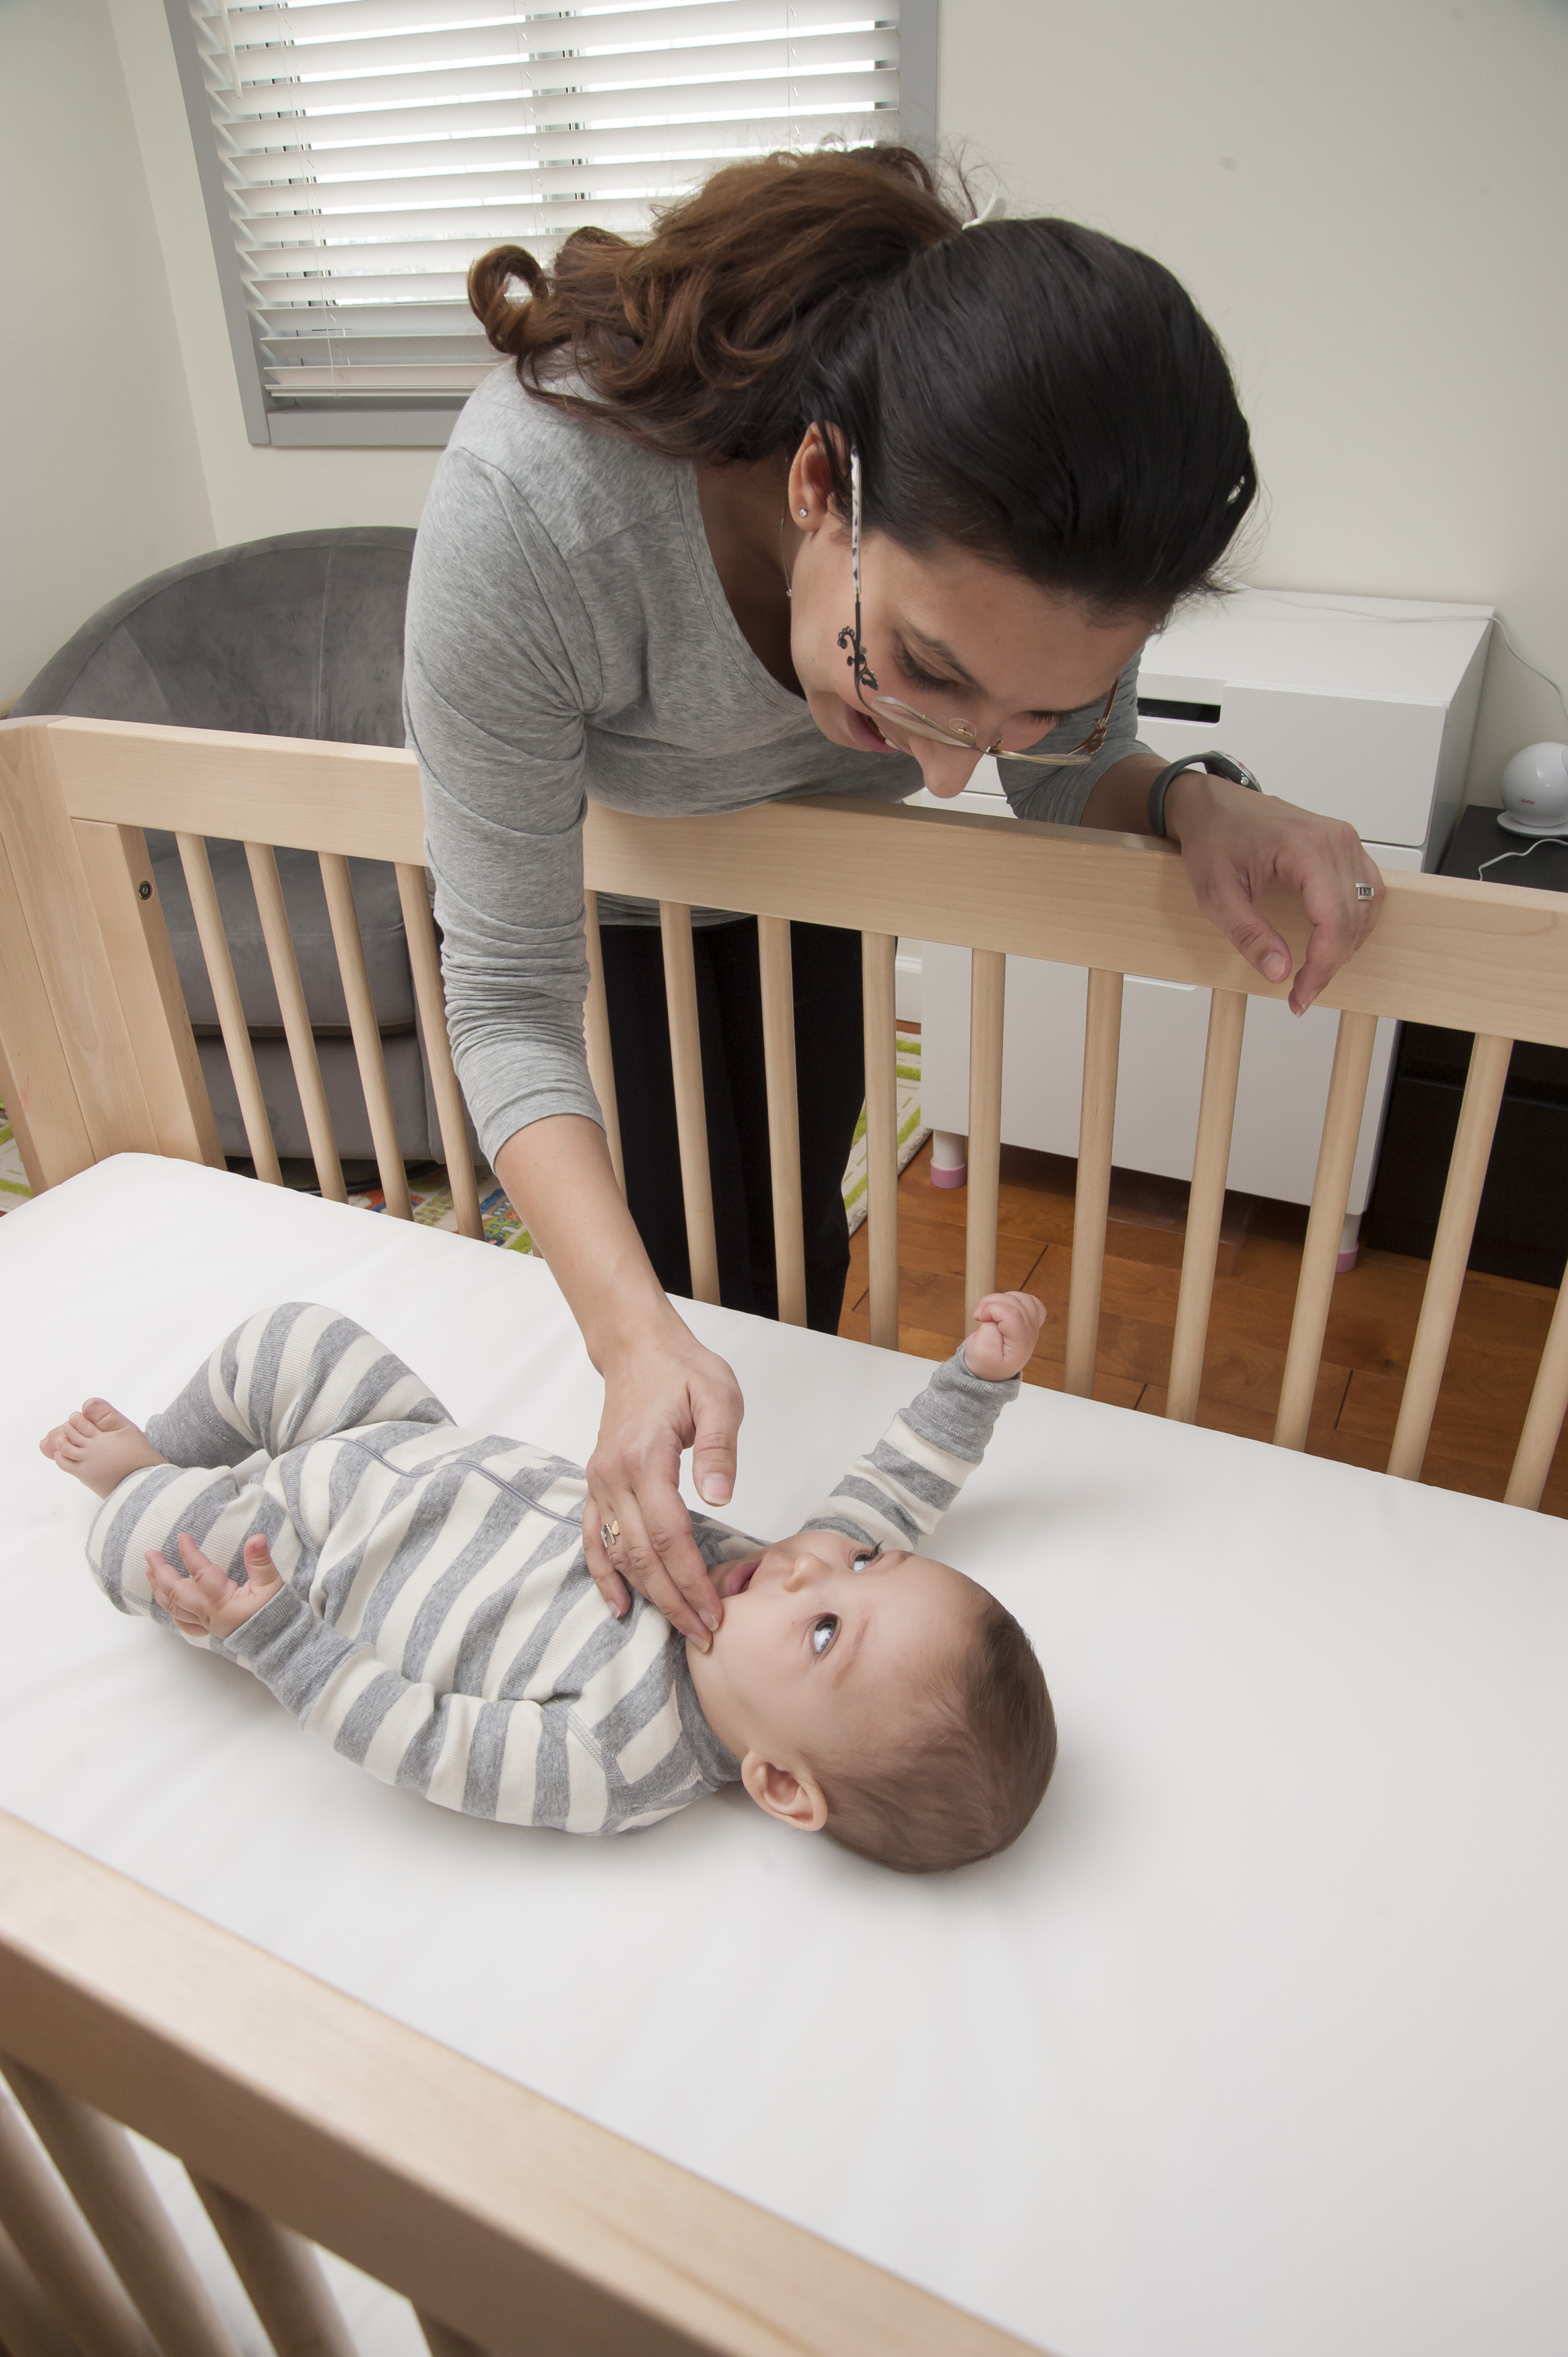 """CDC Grand Rounds on """"Safe Sleep for Infants"""" 